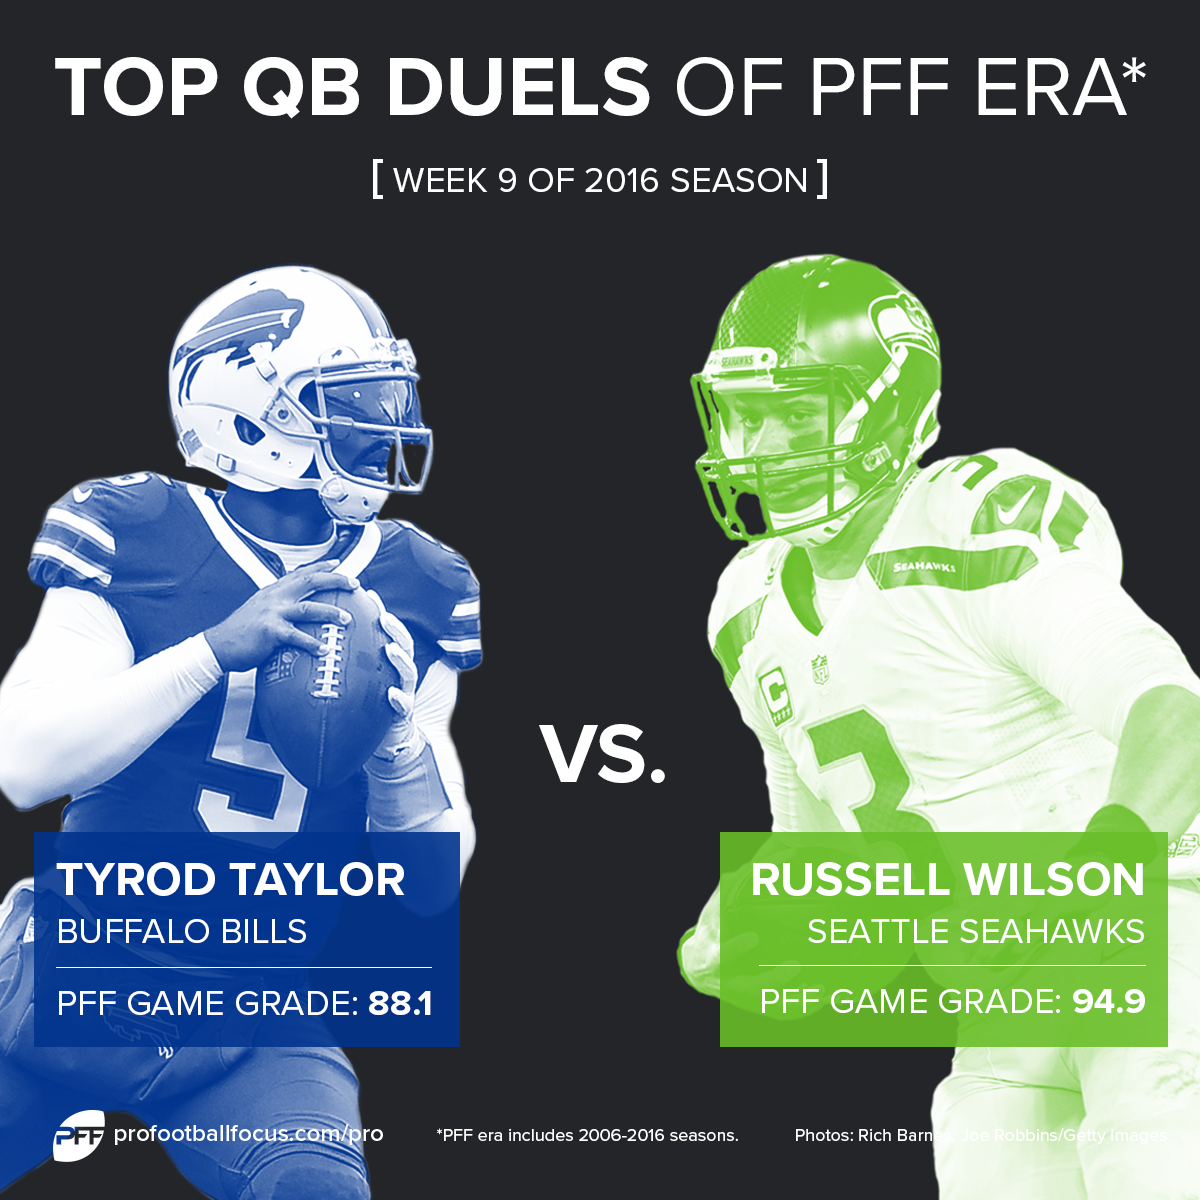 Tyrod Taylor and Russell Wilson